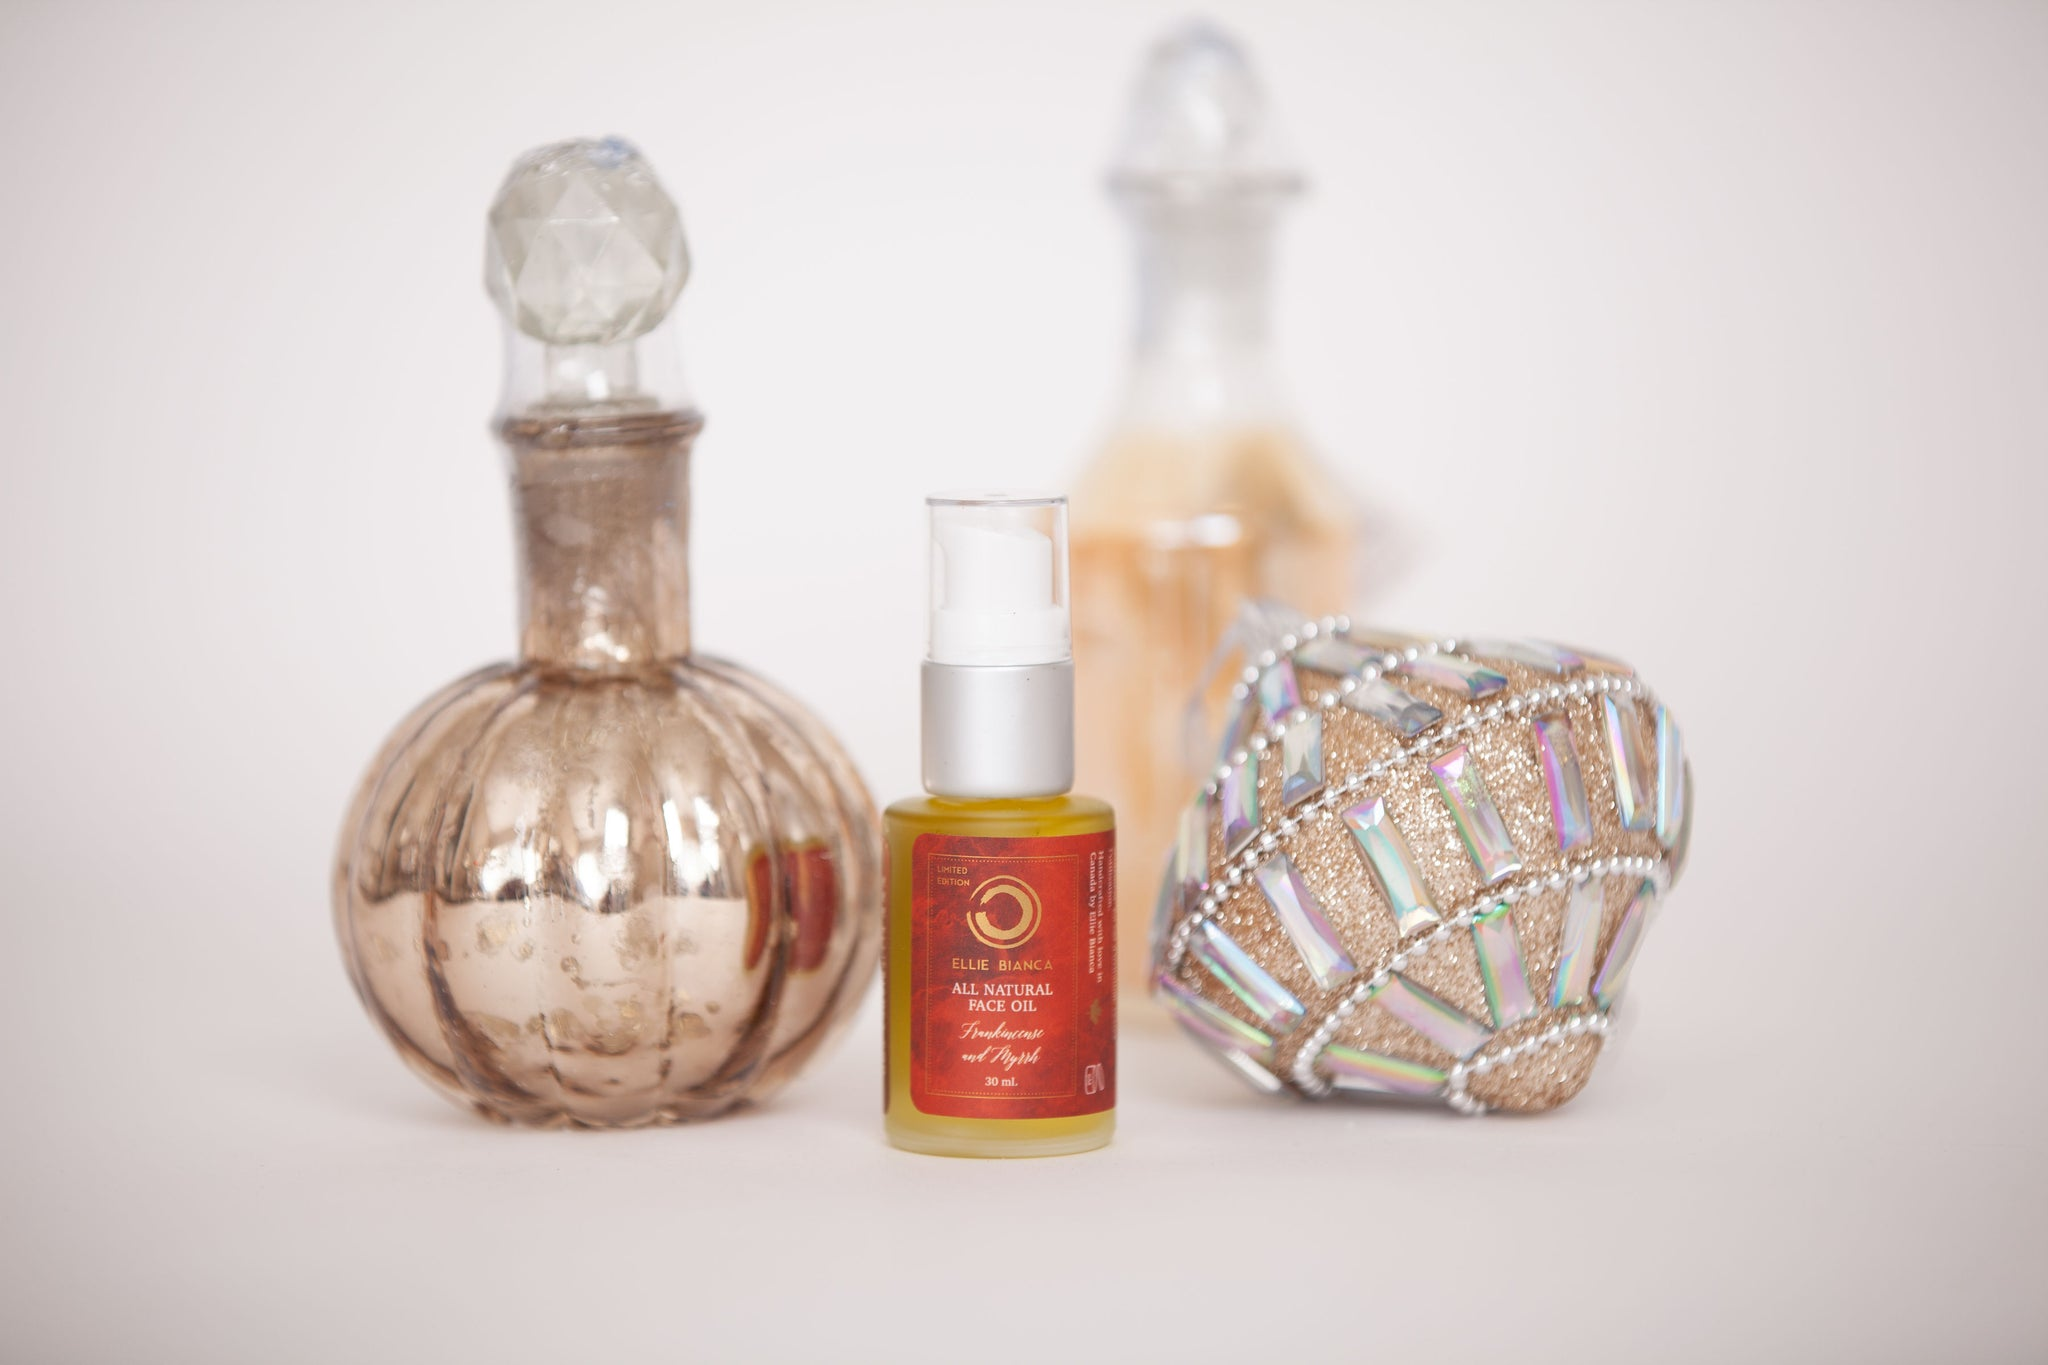 Announcing the New Holiday Frankincense & Myrrh Oil!